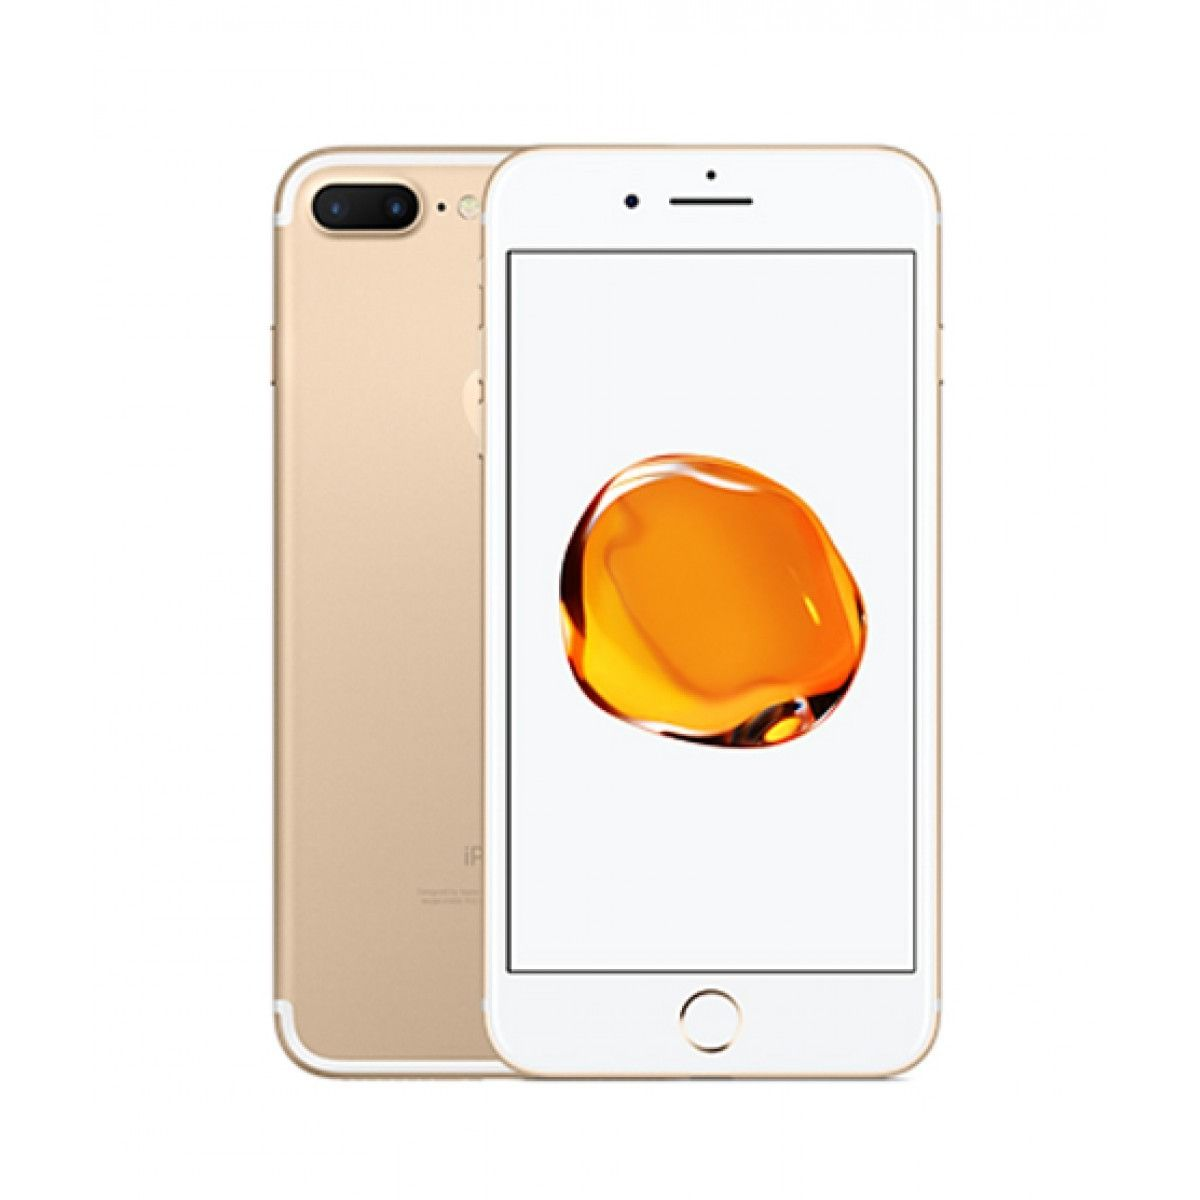 Apple Iphone 7 Plus With Facetime 4g Lte Gold 32gb Iphone 7 Plus Gold Iphone 7 Plus Iphone 7 Plus Photography